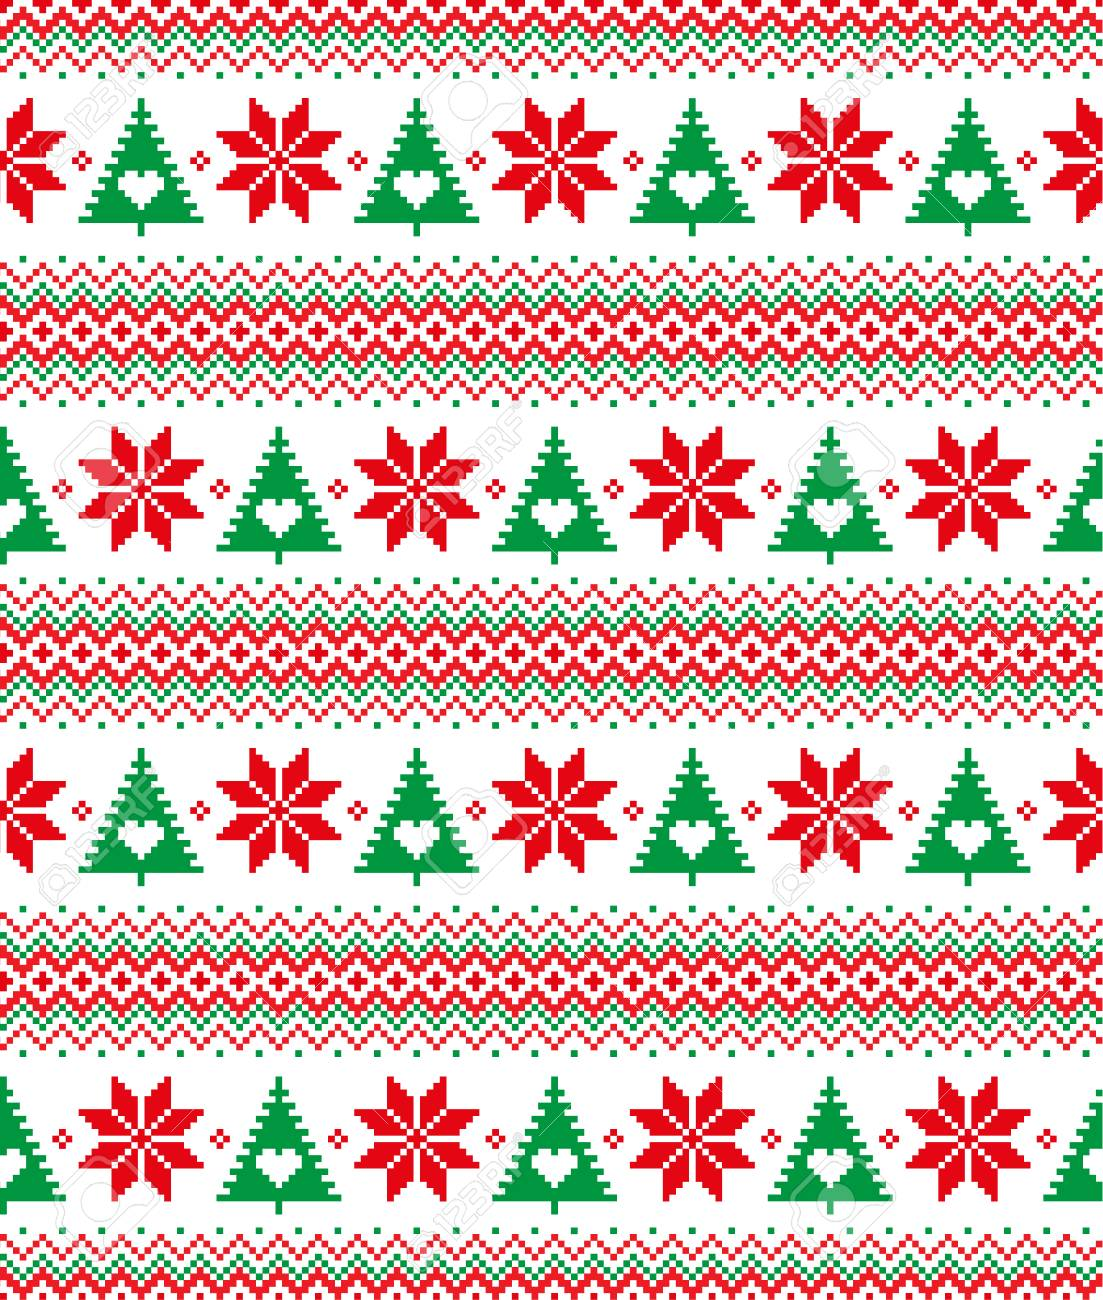 New Year S Christmas Pattern Pixel For Print Royalty Free Cliparts Vectors And Stock Illustration Image 90908137